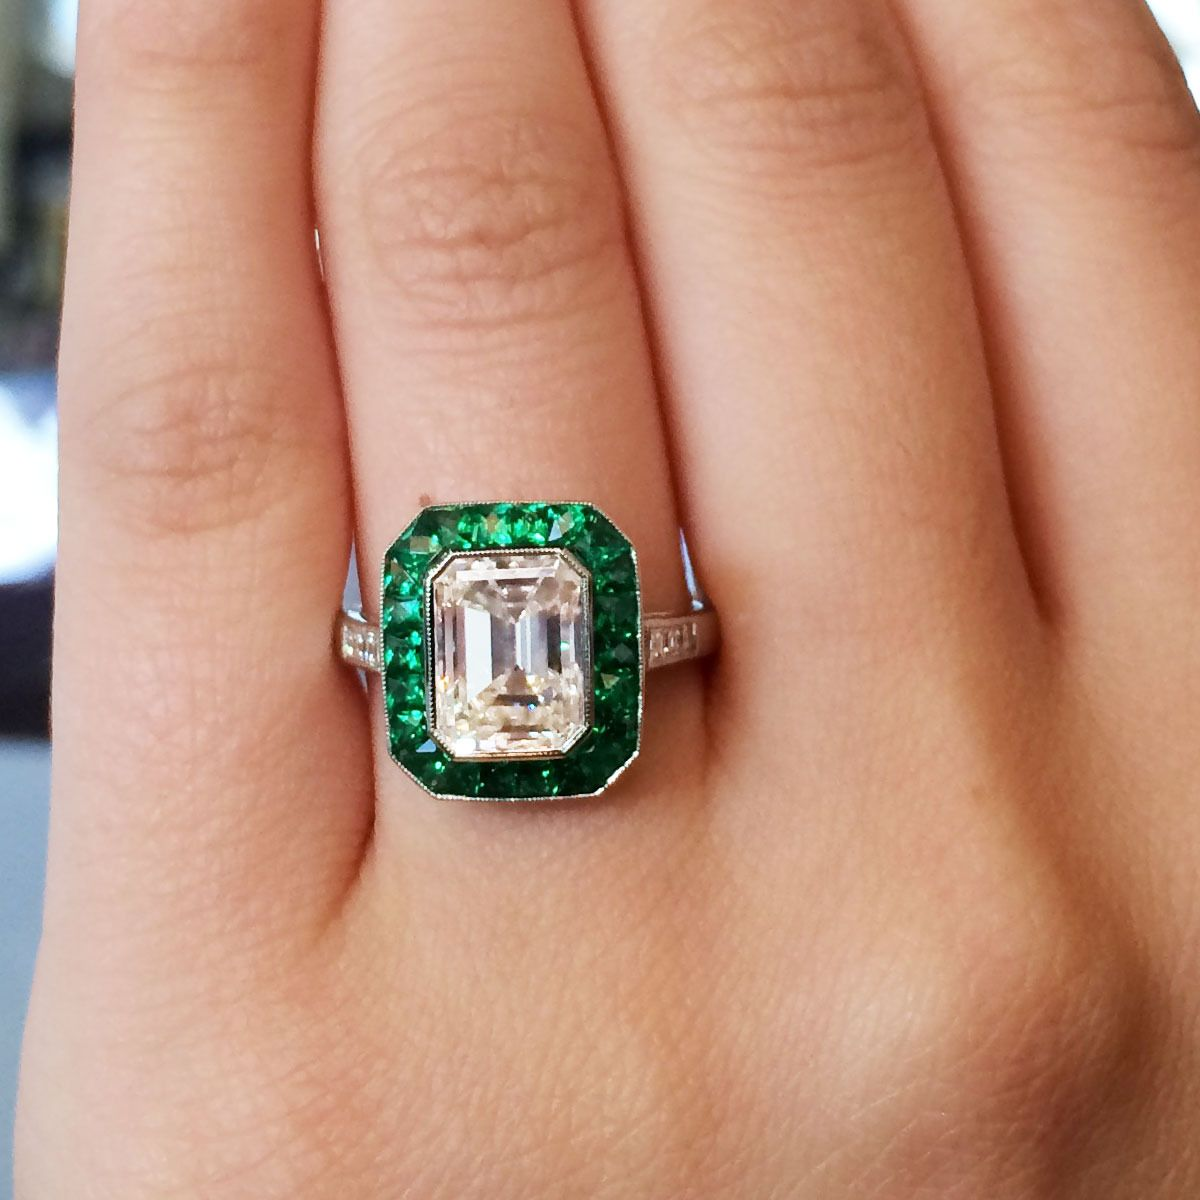 2.51 Carat Emerald Cut Diamond Emerald Halo Platinum Engagement Ring